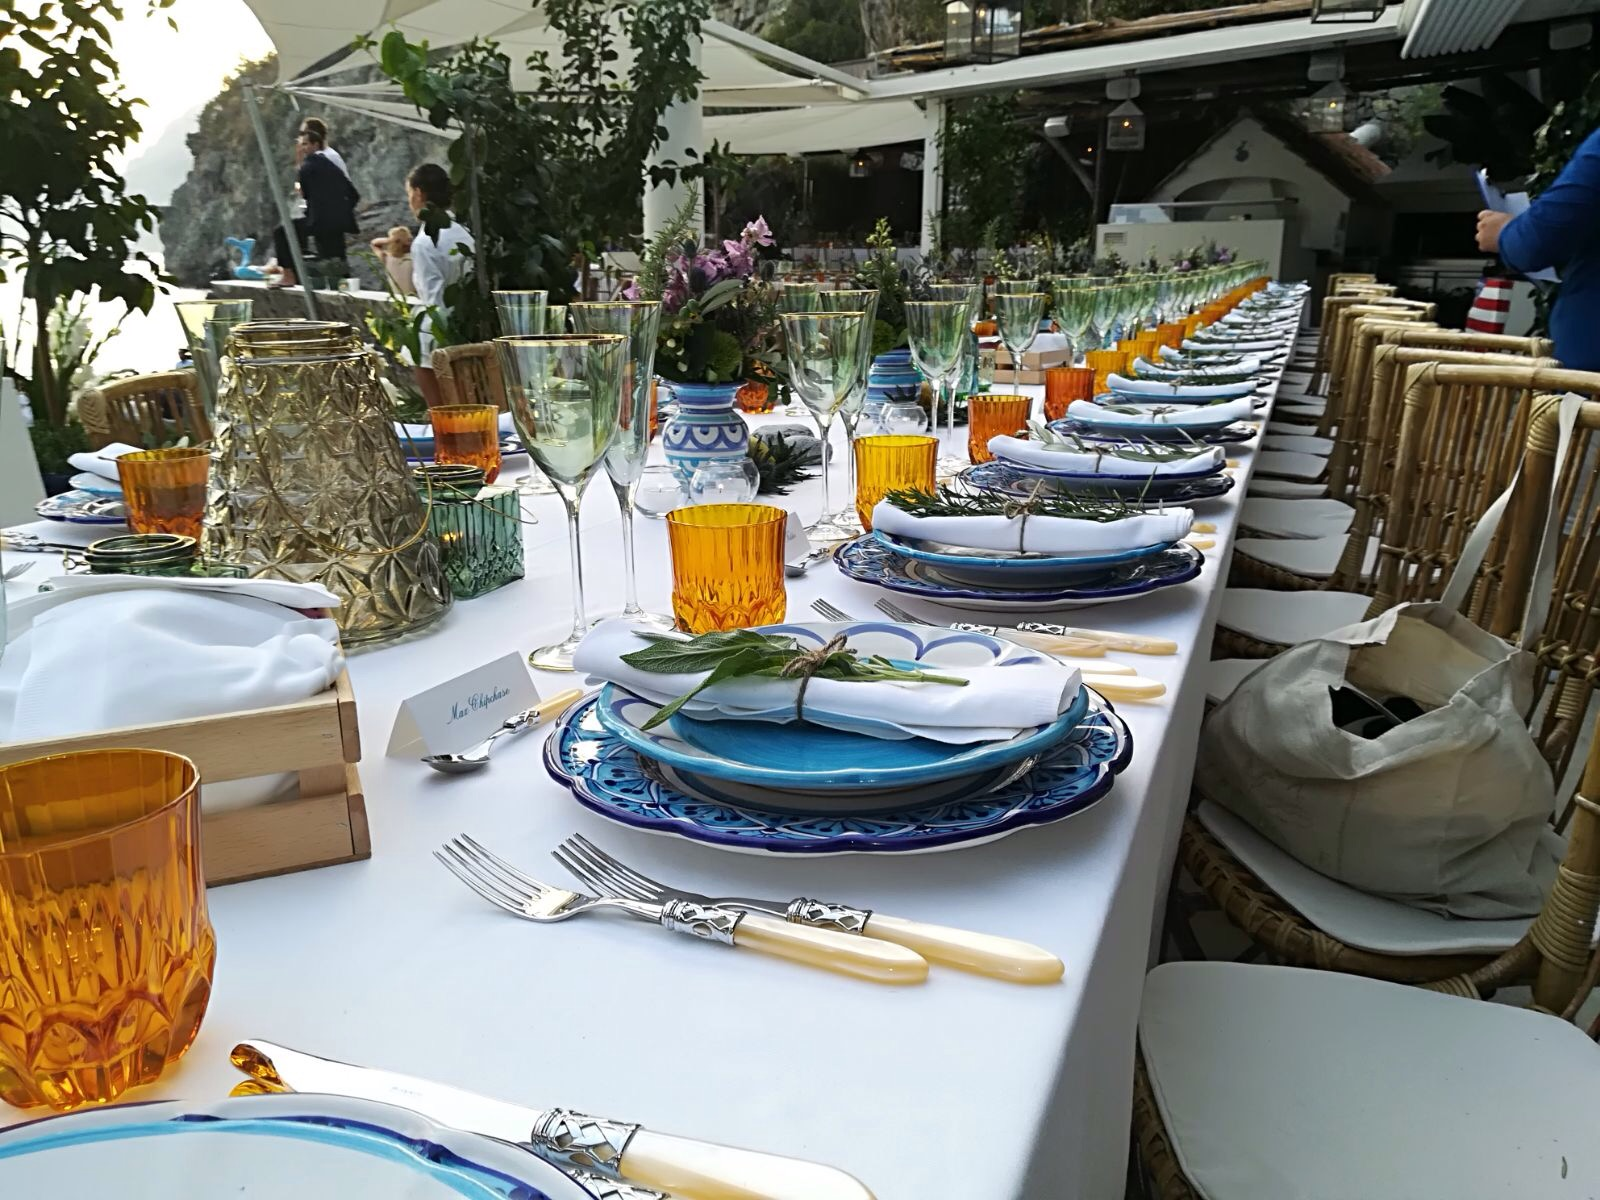 http://www.weddingamalfi.com/wp-content/uploads/Anna-and-Charles-wedding-table-colorful-decorations-complete.jpg